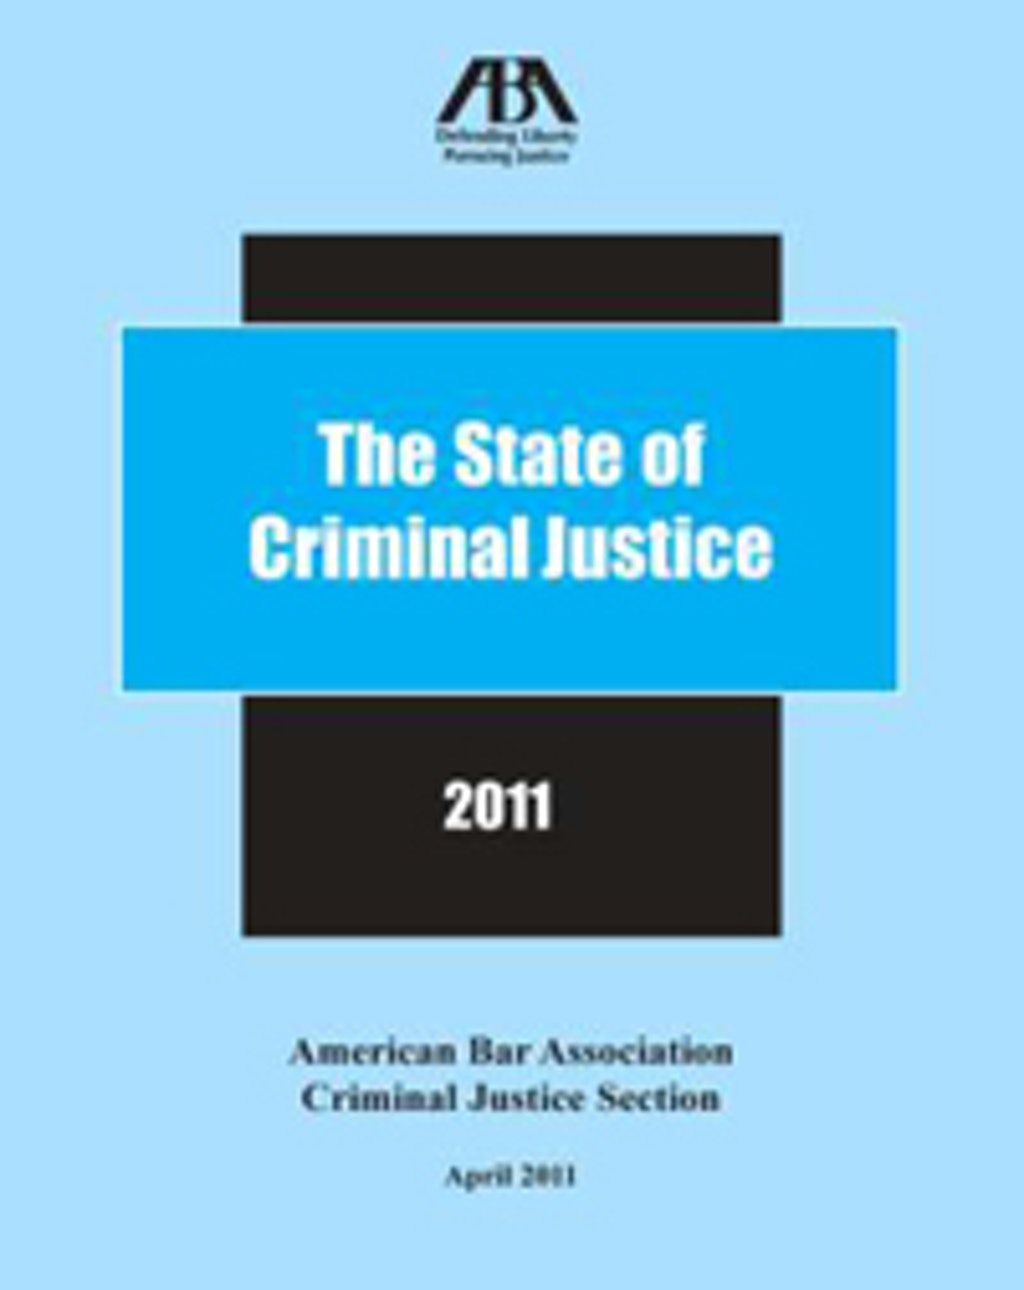 NEW RESOURCES: The State of Criminal Justice 2011